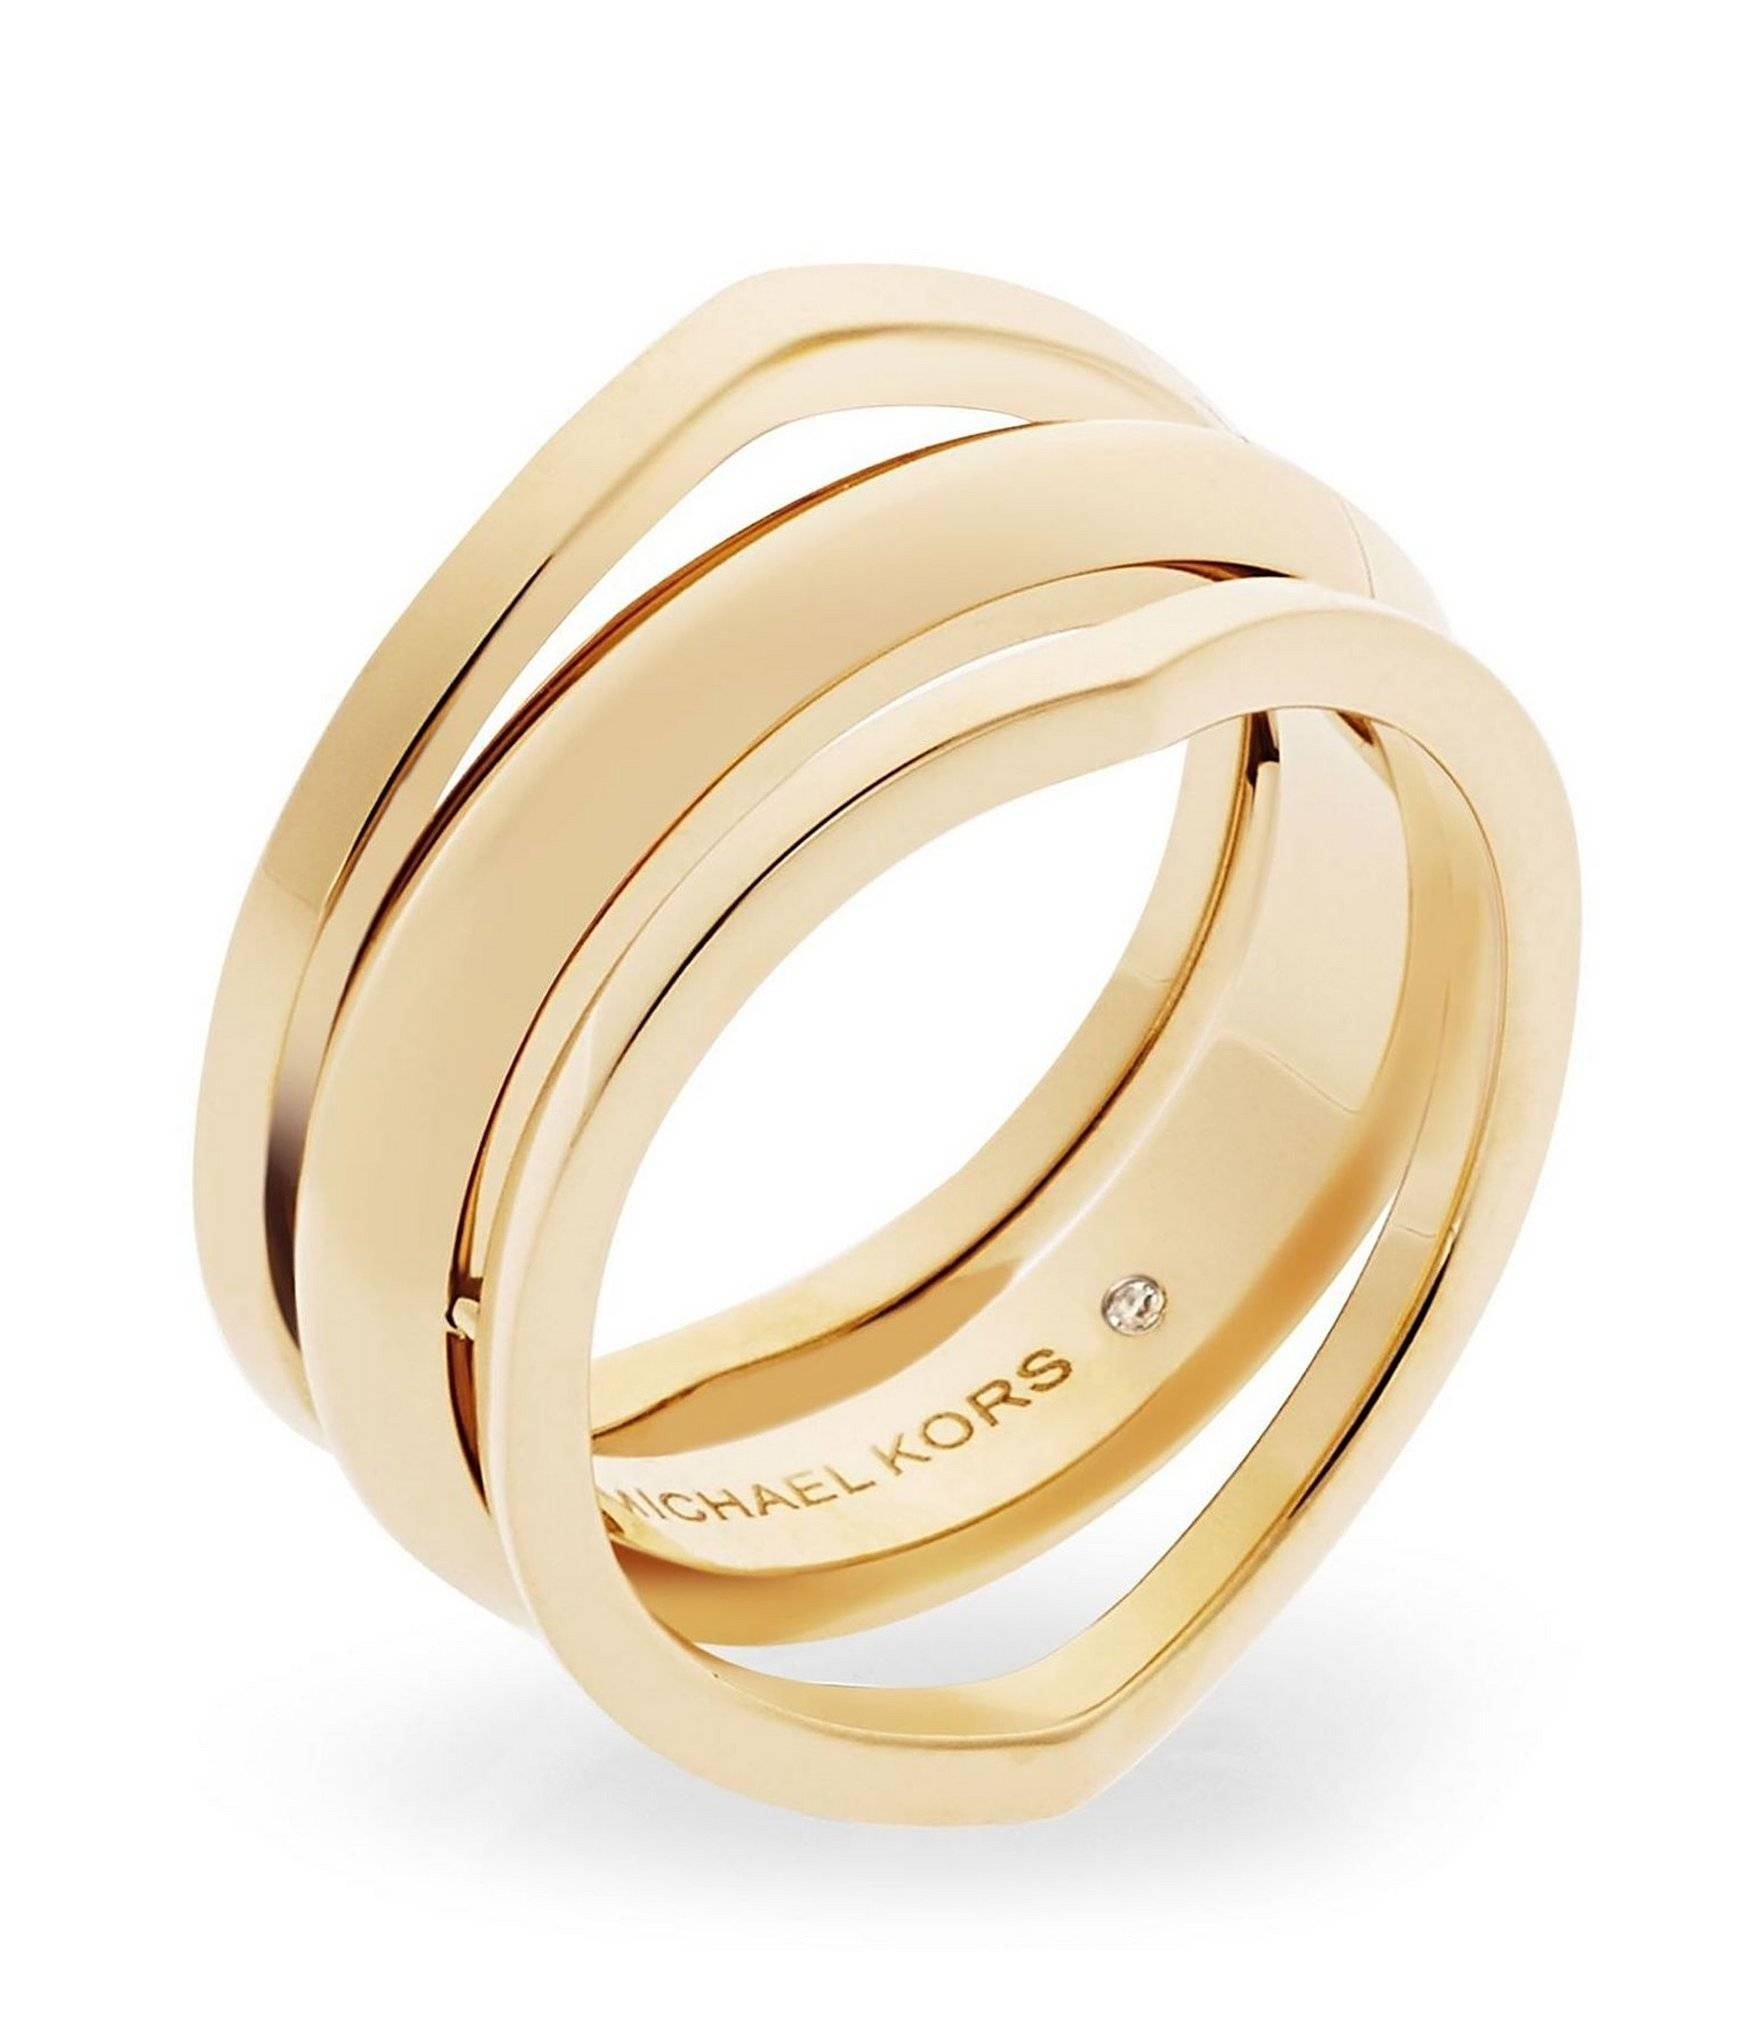 Accessories | Jewelry | Rings | Dillards Within Dillards Wedding Rings (Gallery 6 of 15)